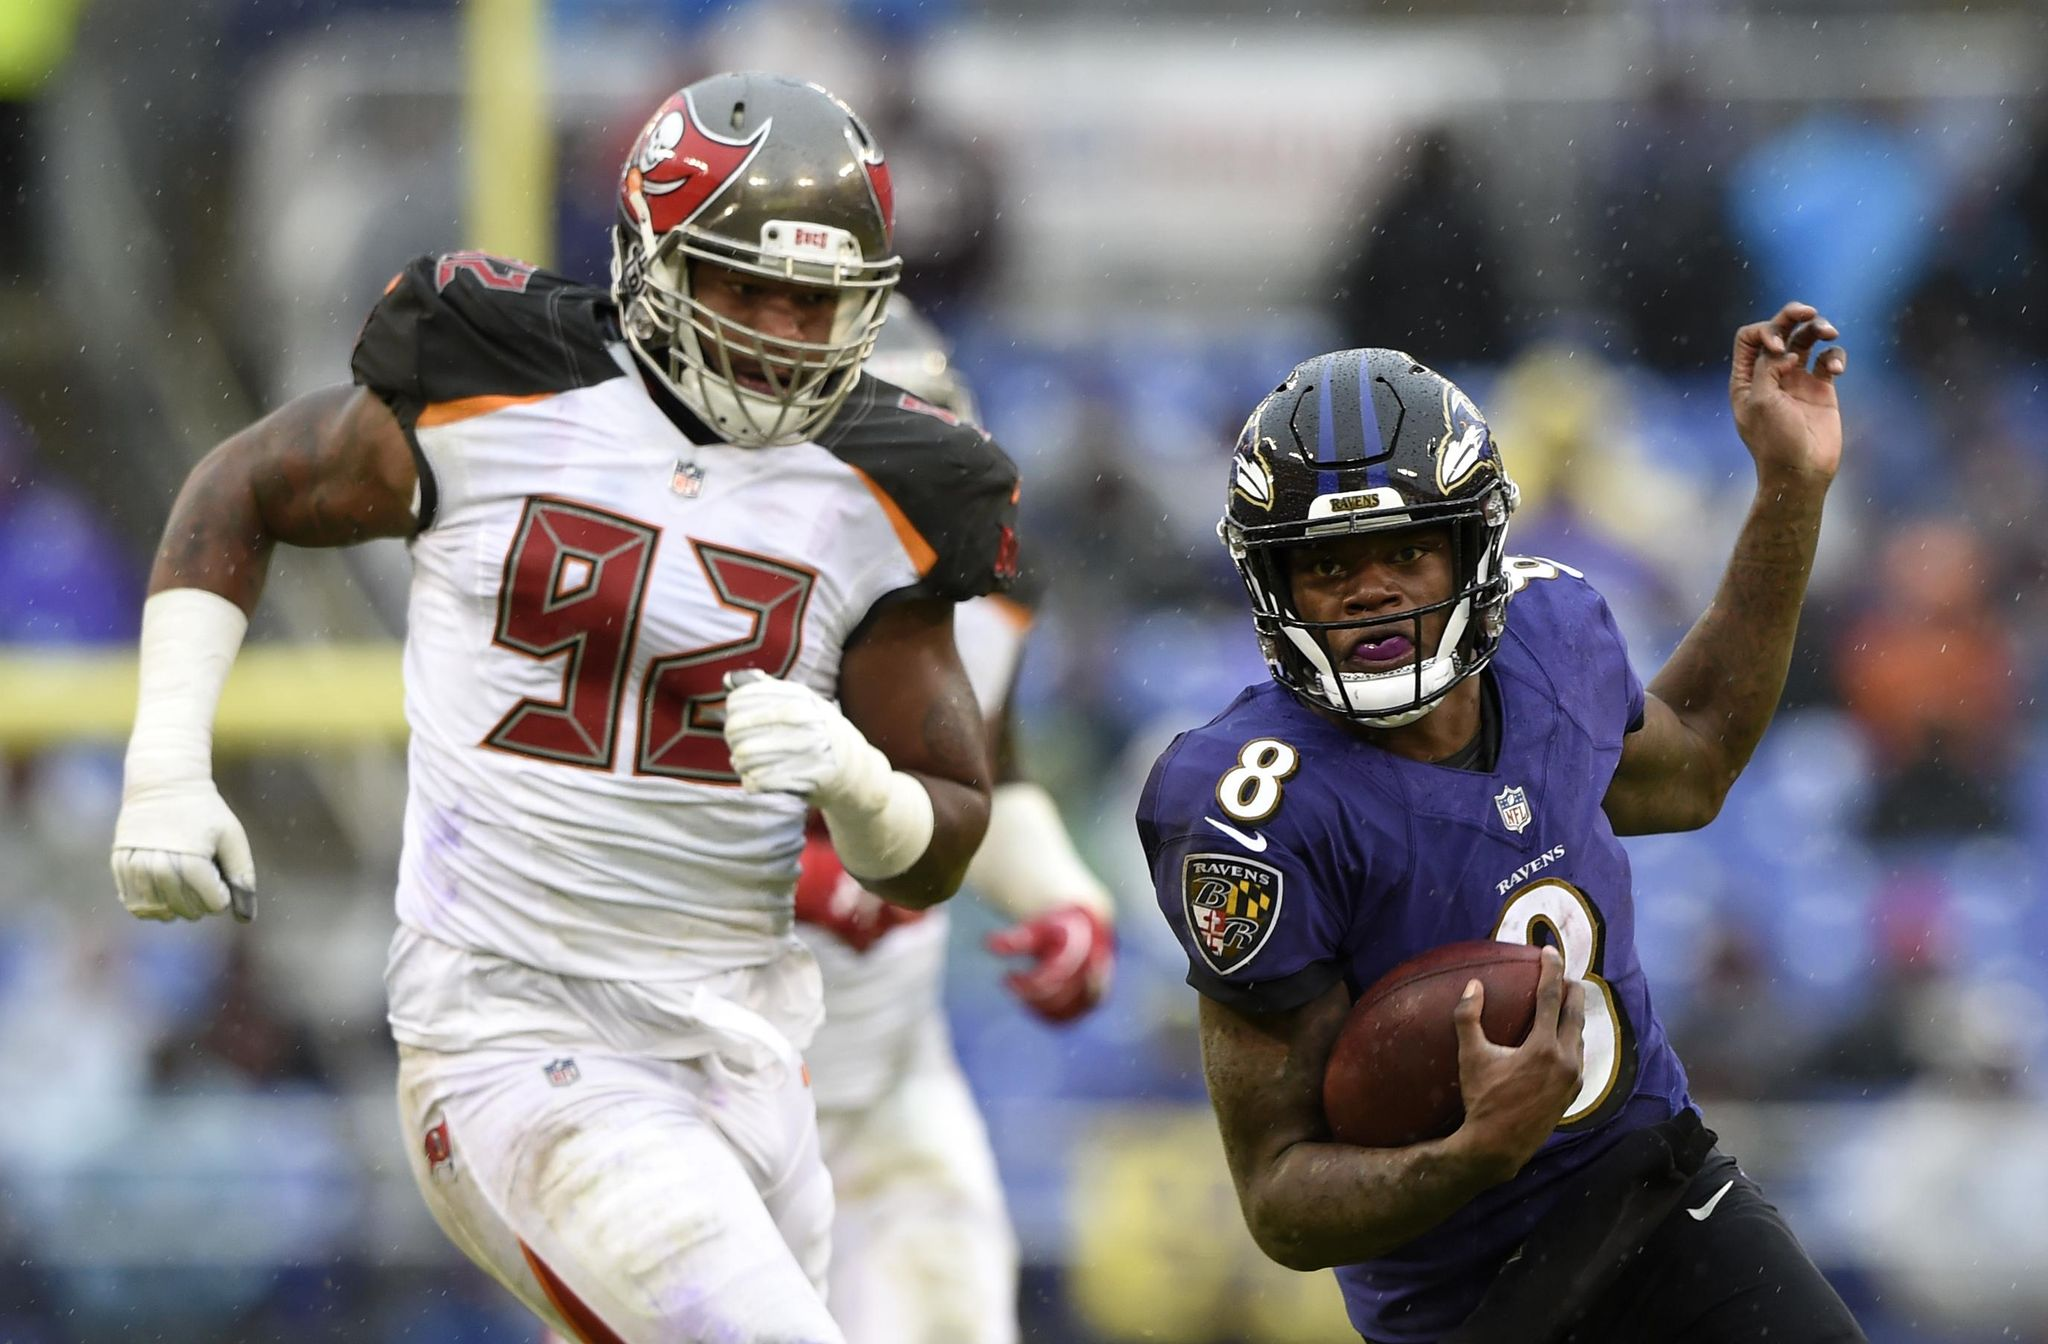 Buccaneers_ravens_football_08852_s2048x1344